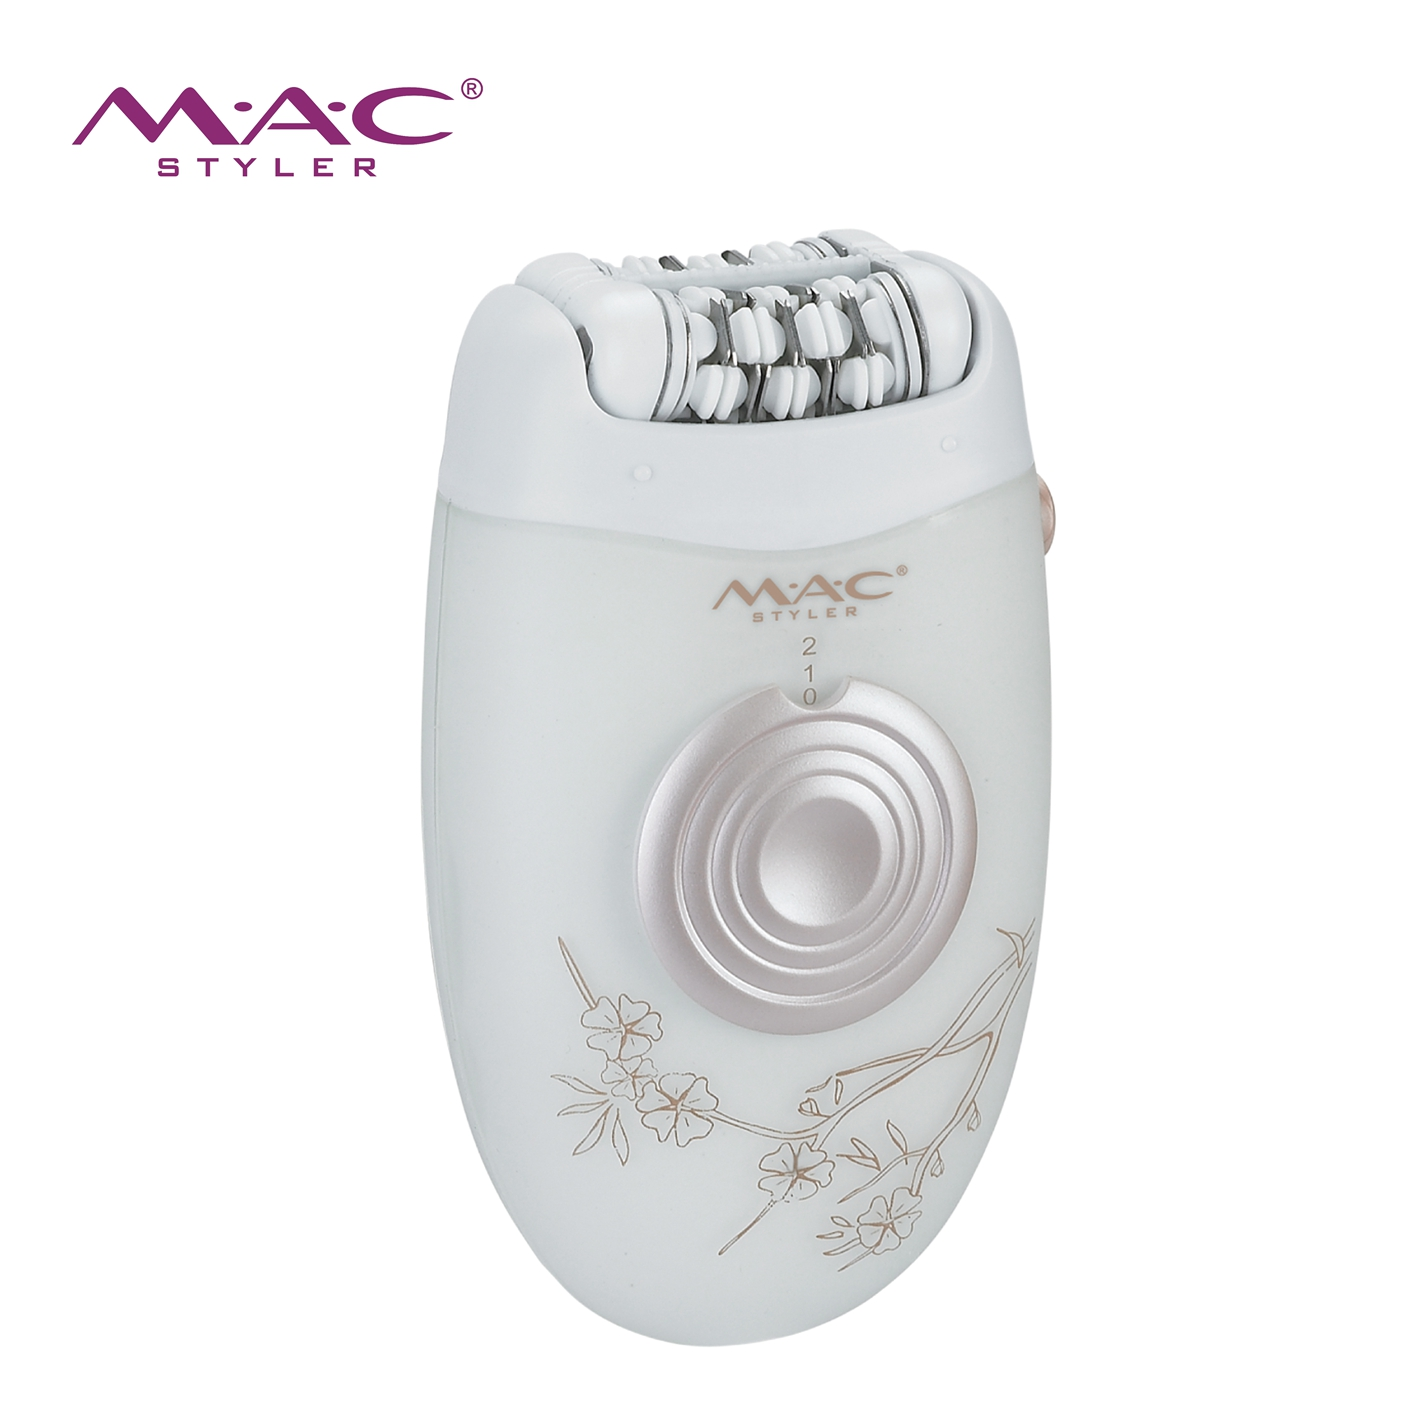 3 In 1 Mini Lady Shaver Women's Lady'S Electric Shaver Epilator Electric Multifunctional Professional Painless Hair Removal